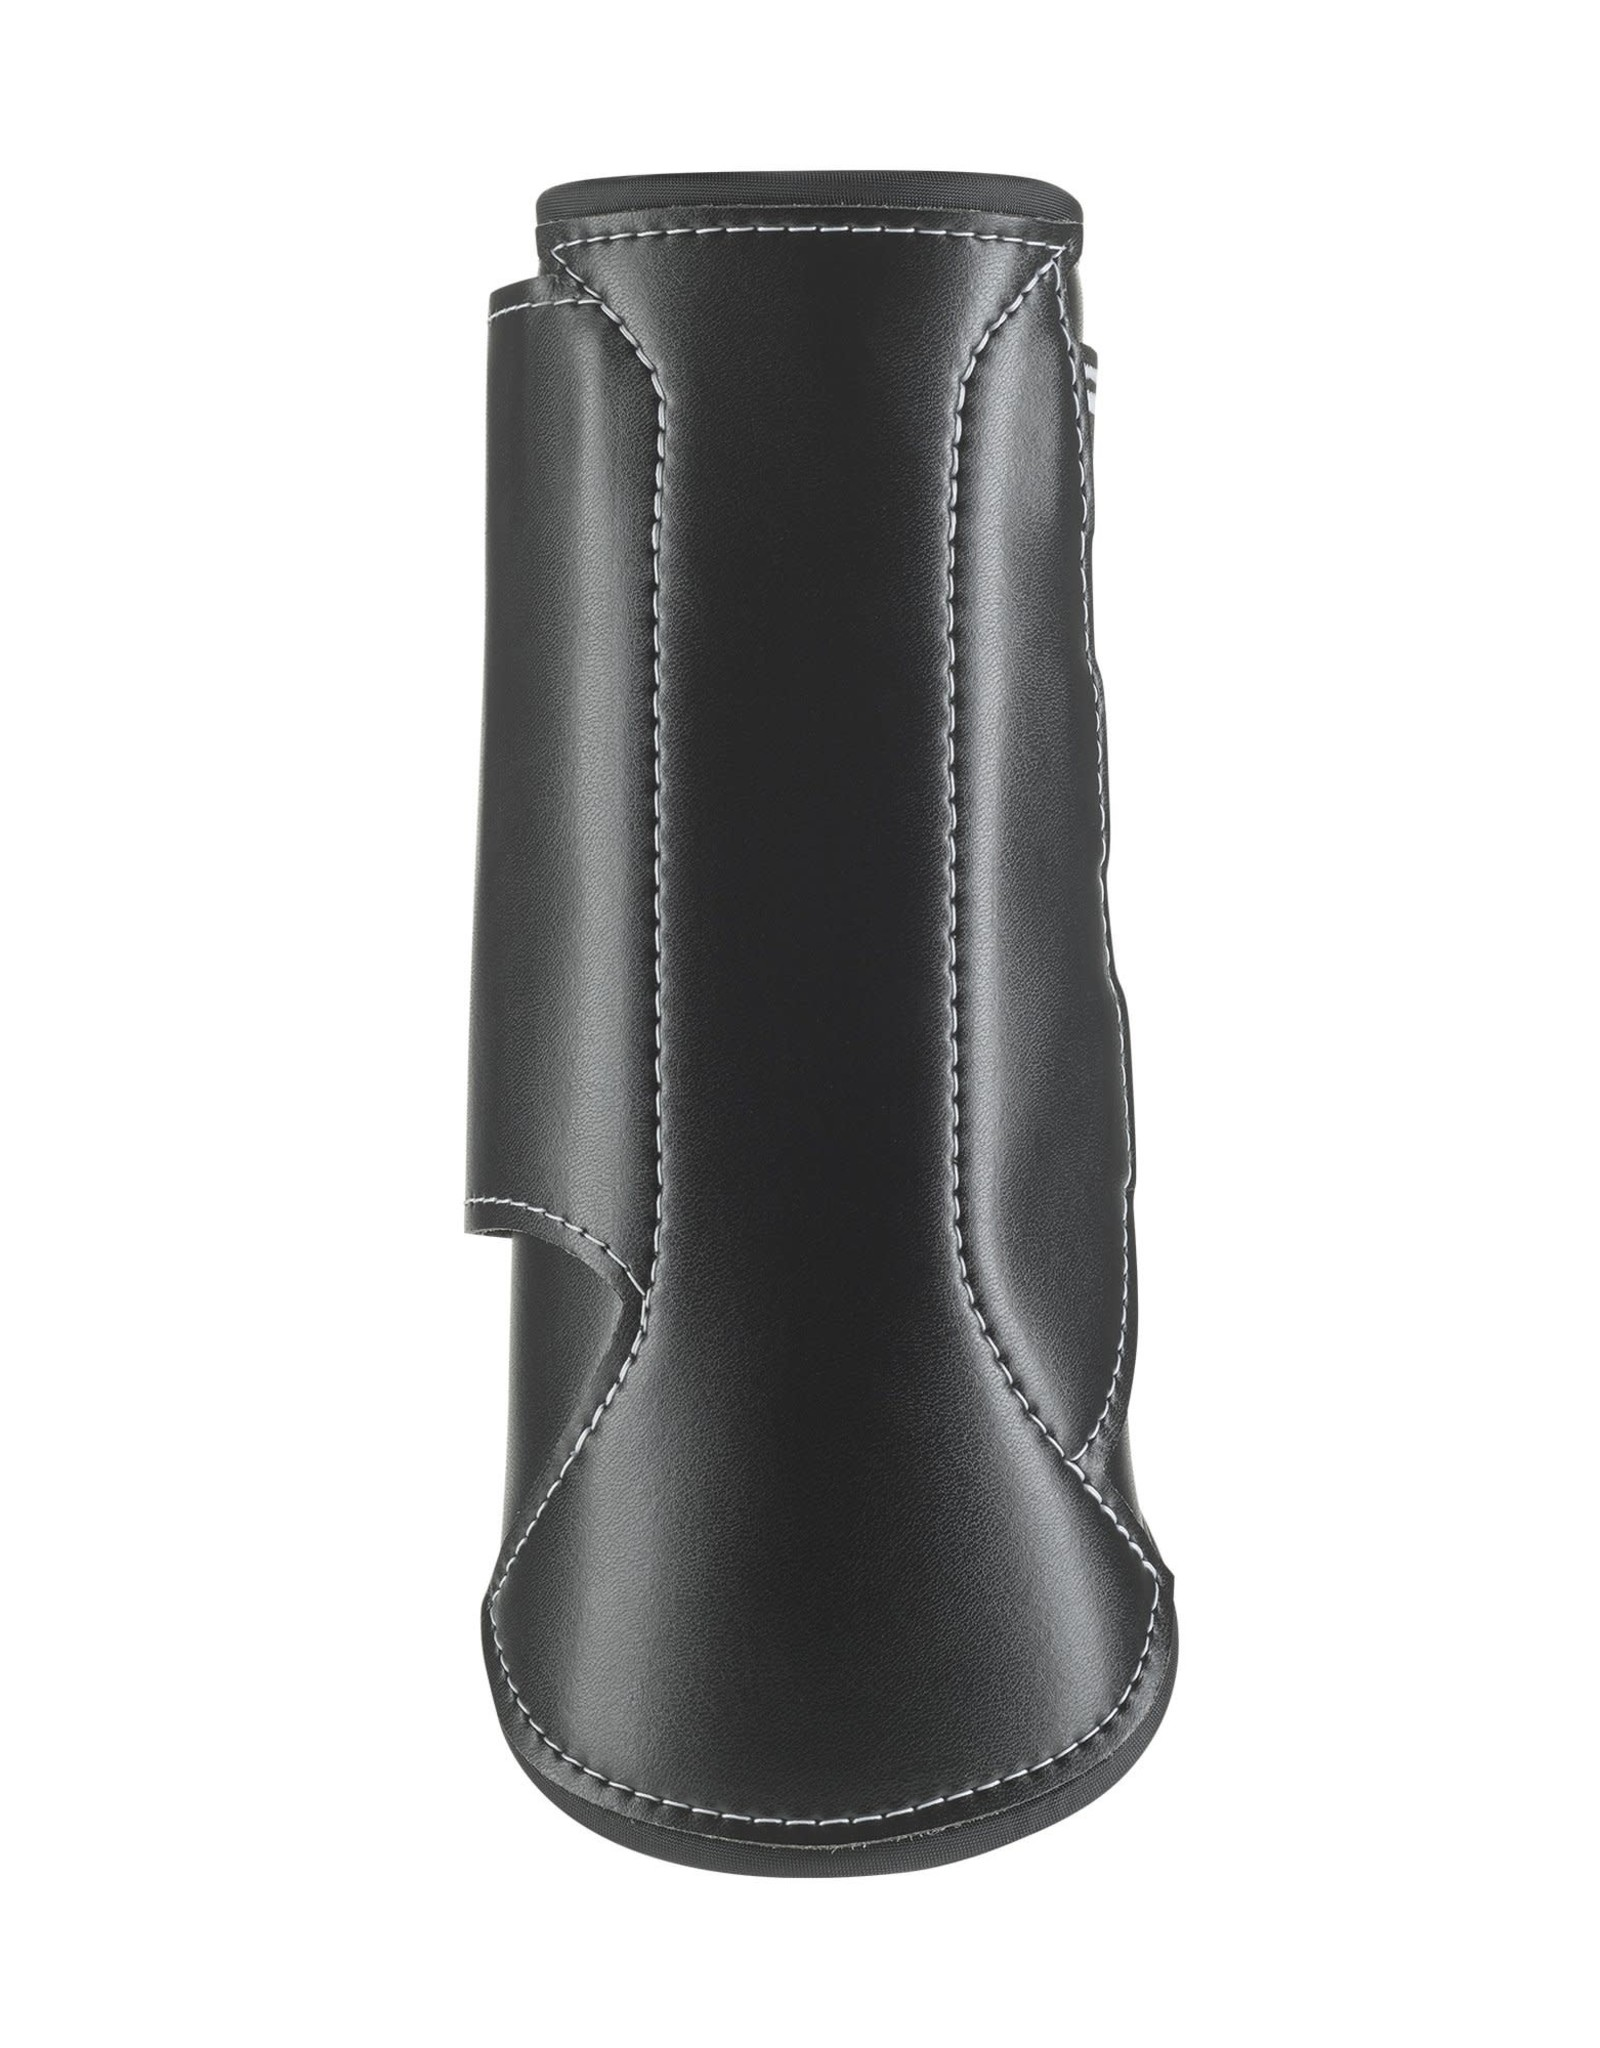 EQUIFIT MULTITEQ™ TALL HIND BOOT (SHEEPSWOOL)